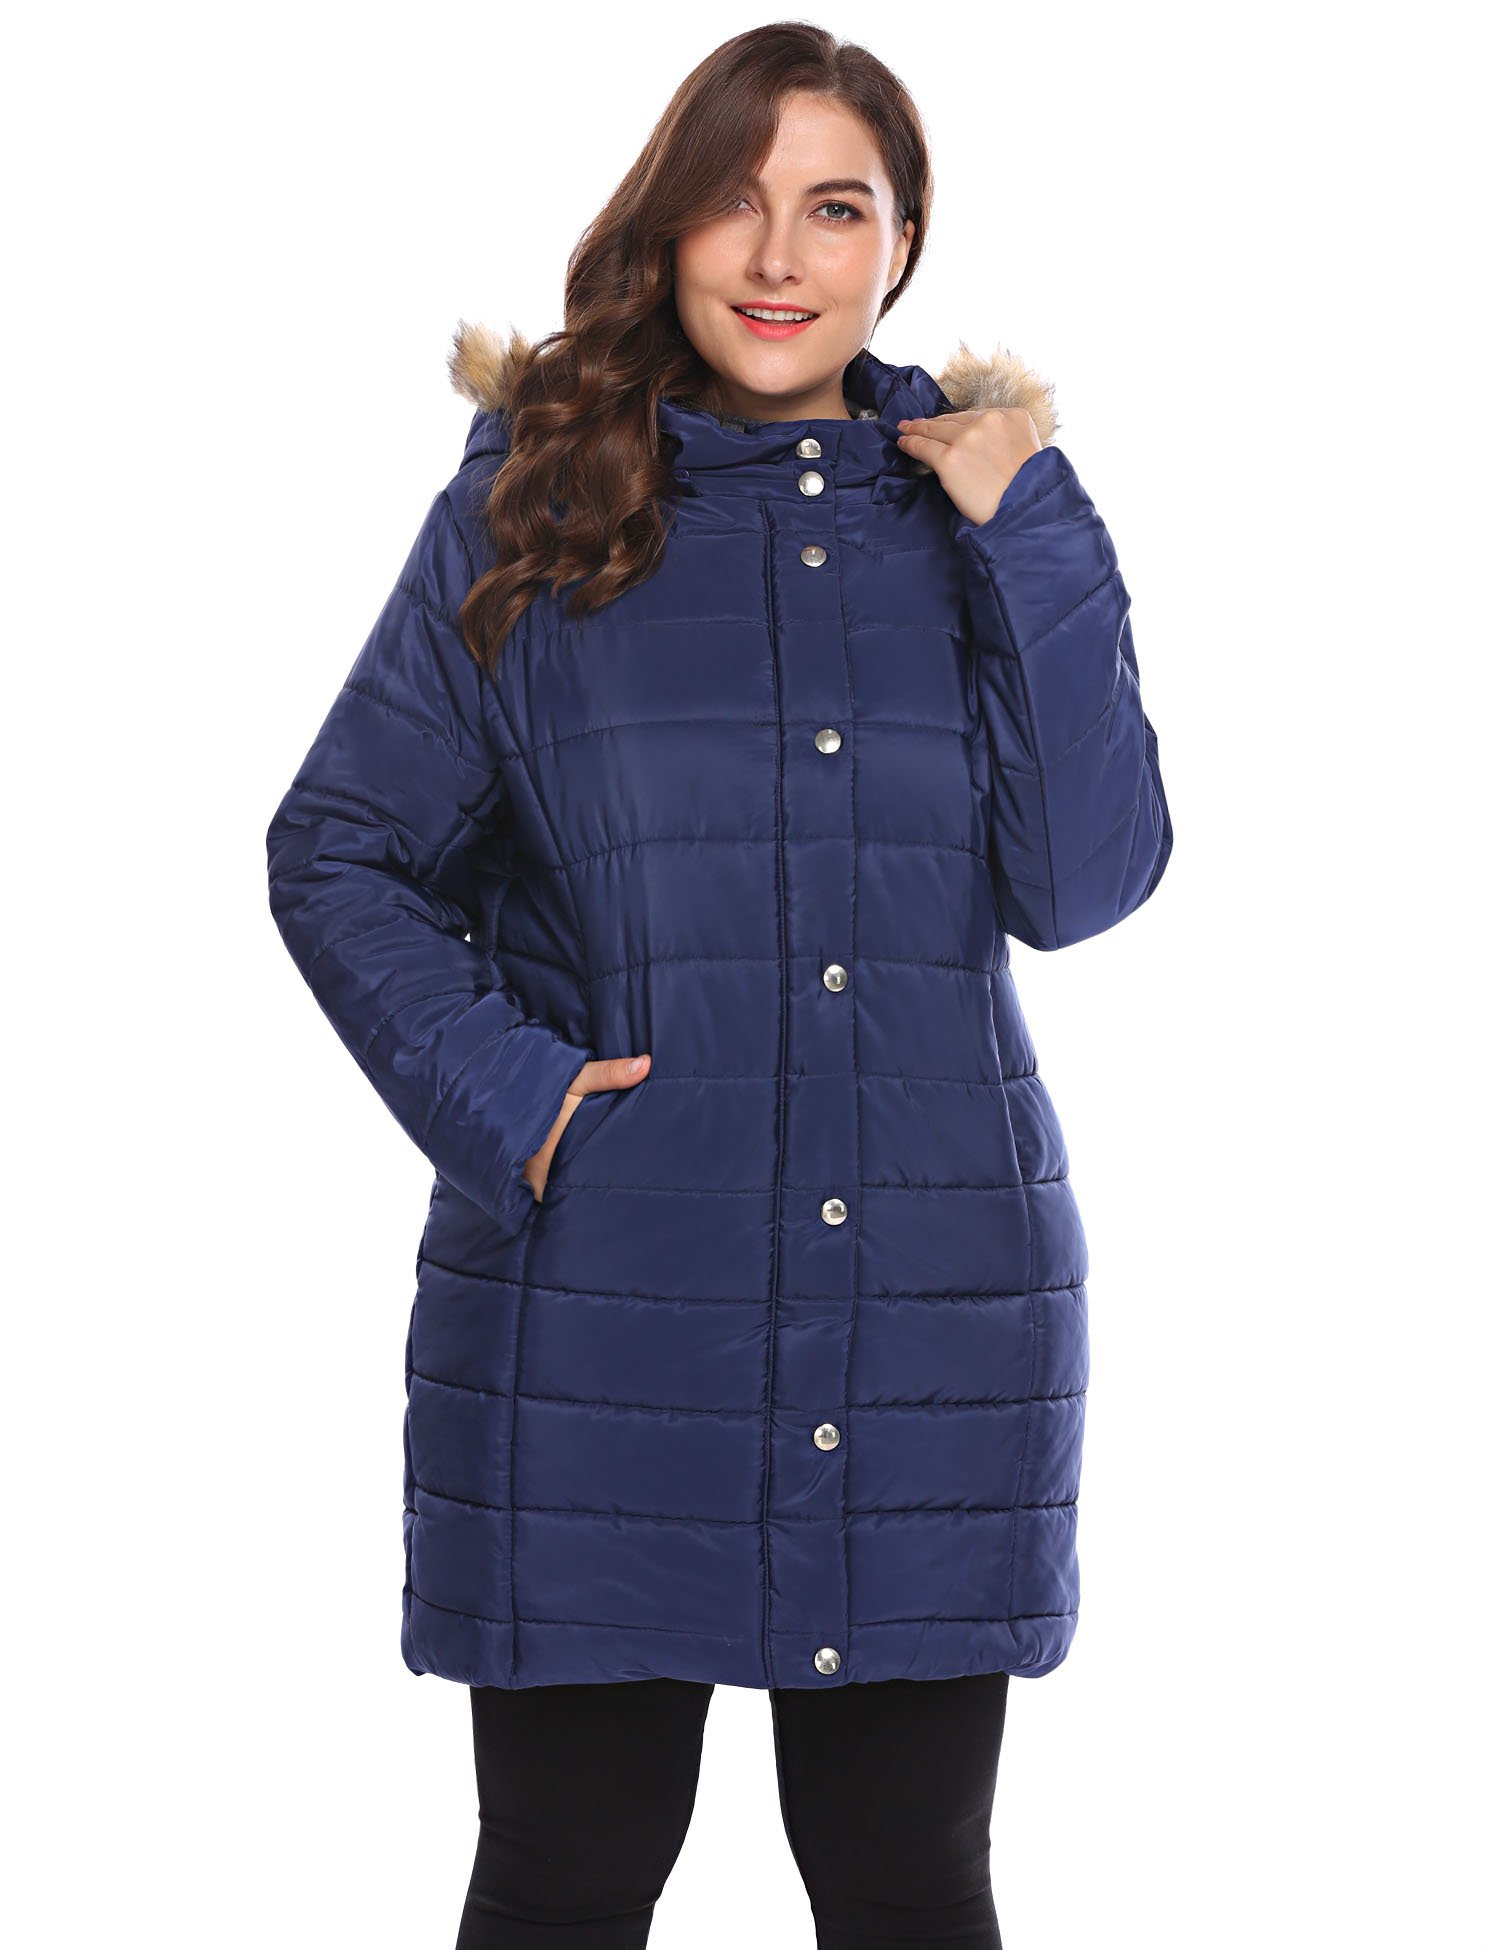 Involand Womens Plus Size Warm Winter Puffer Coat Zip Up Quilted Hooded Short Parka